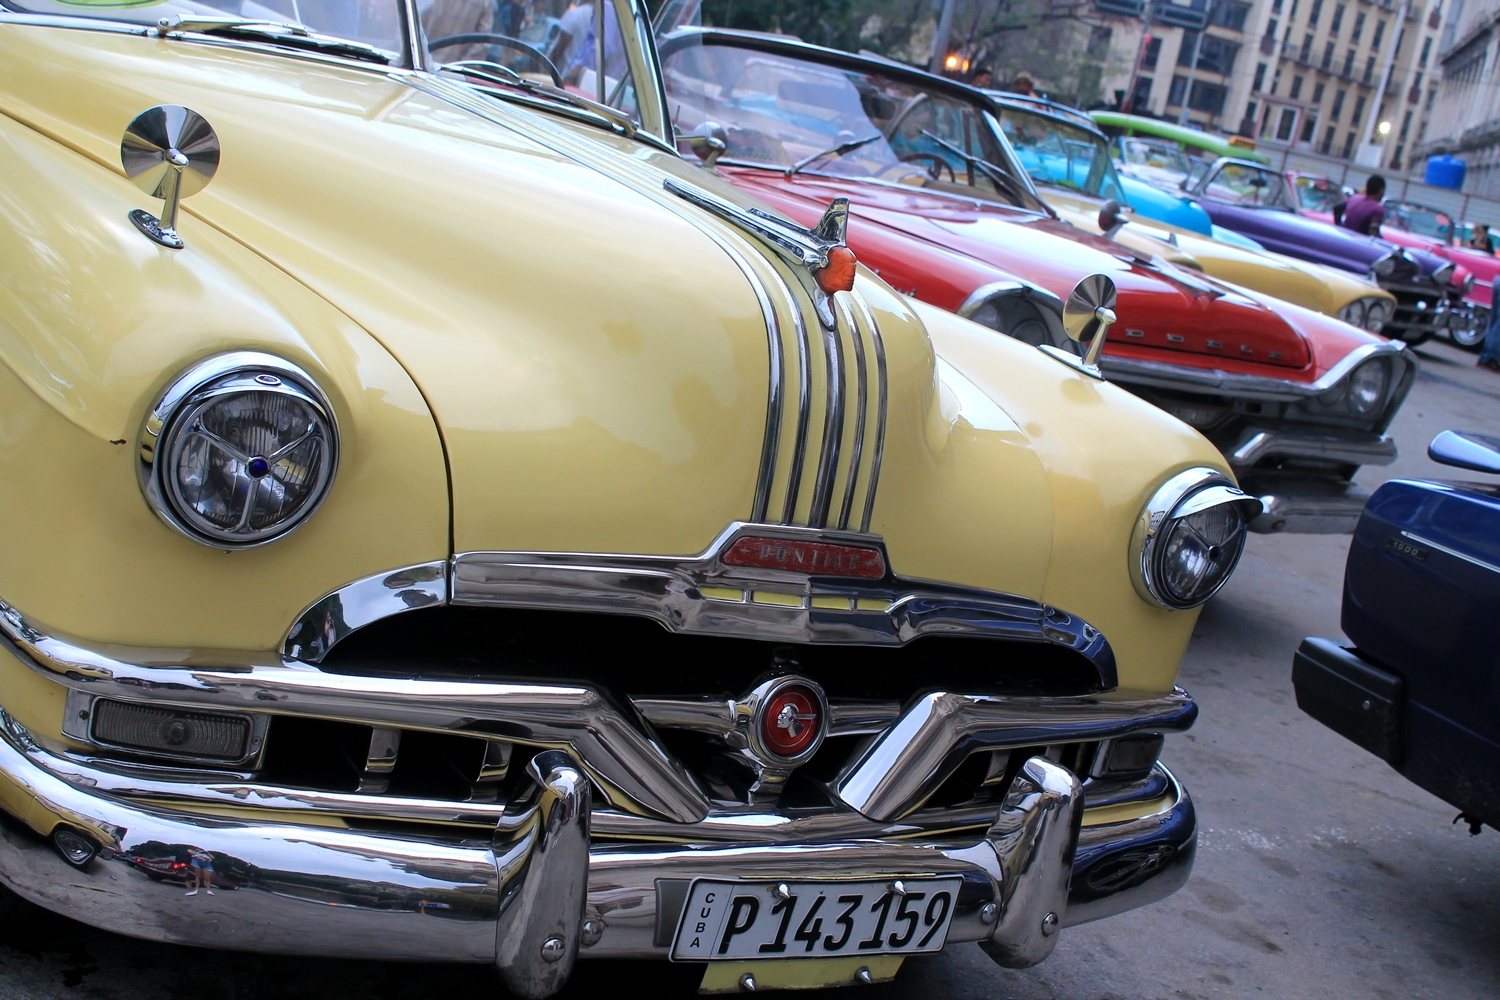 beautiful cars la habana cuba parque central